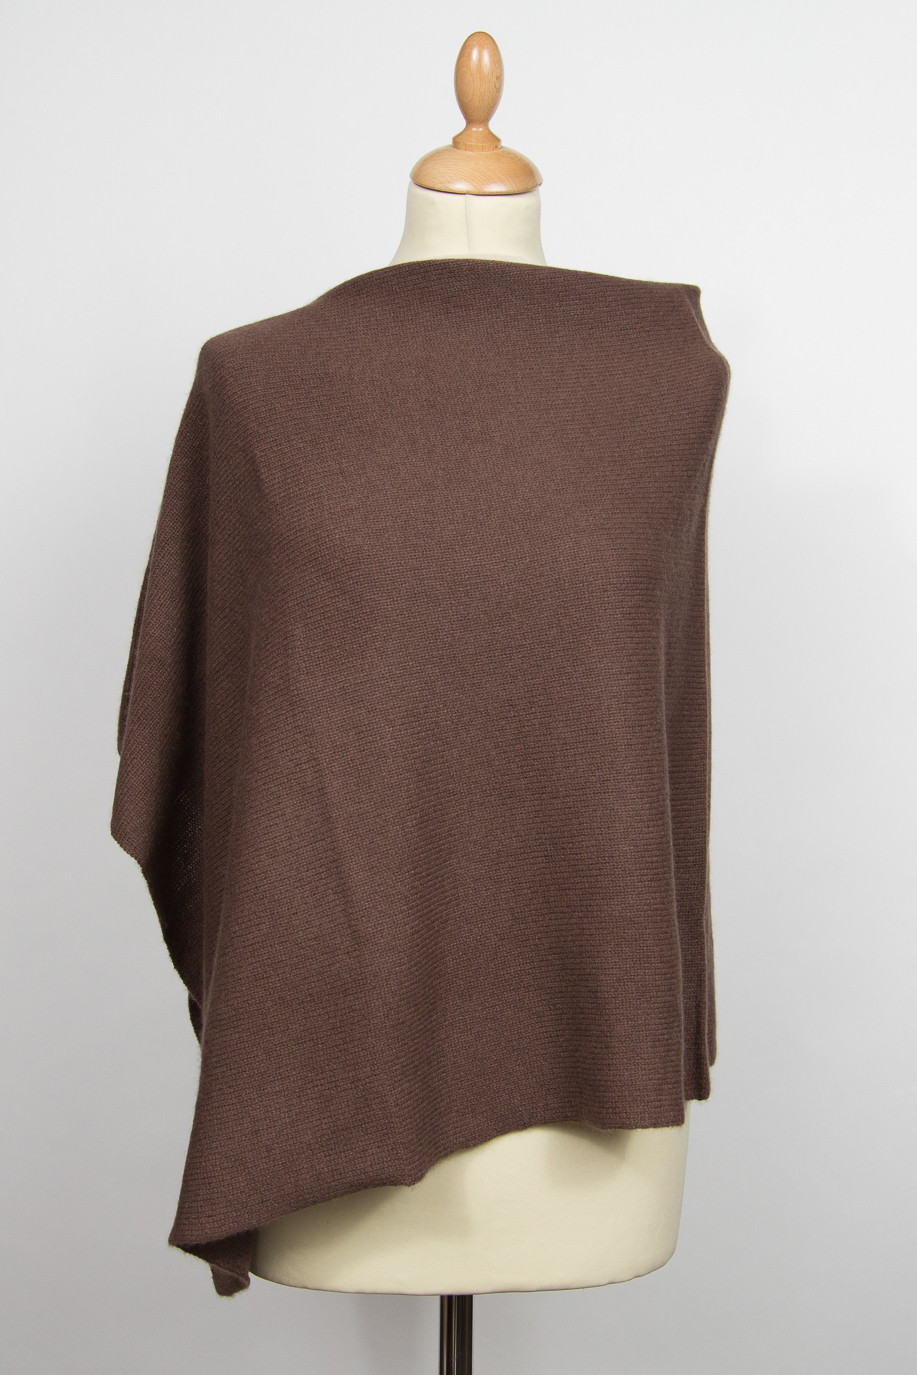 Poncho 4 fils pur cachemire marron BROWN